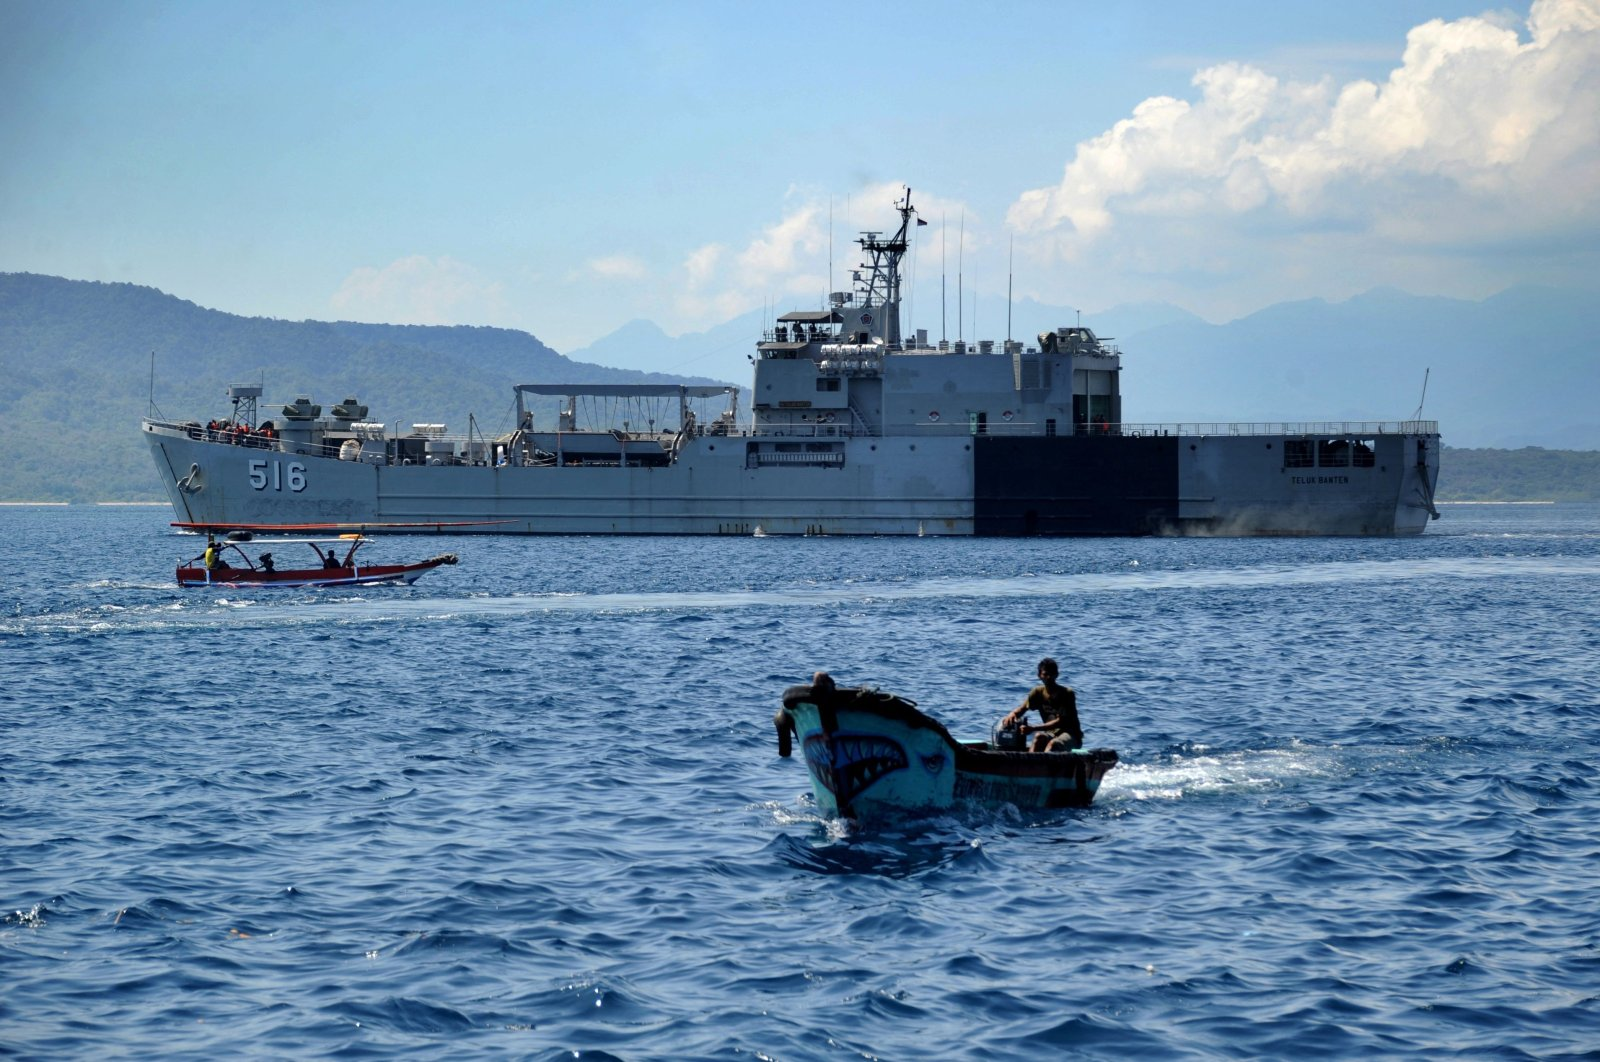 An Indonesian Navy ship sets off from the port of Tanjungwangi near the naval base in Banyuwangi, East Java province on April 25, 2021, as the military continues the search off the coast of neighboring Bali island for the navy's KRI Nanggala submarine that went missing April 21 during a training exercise. (AFP Photo)